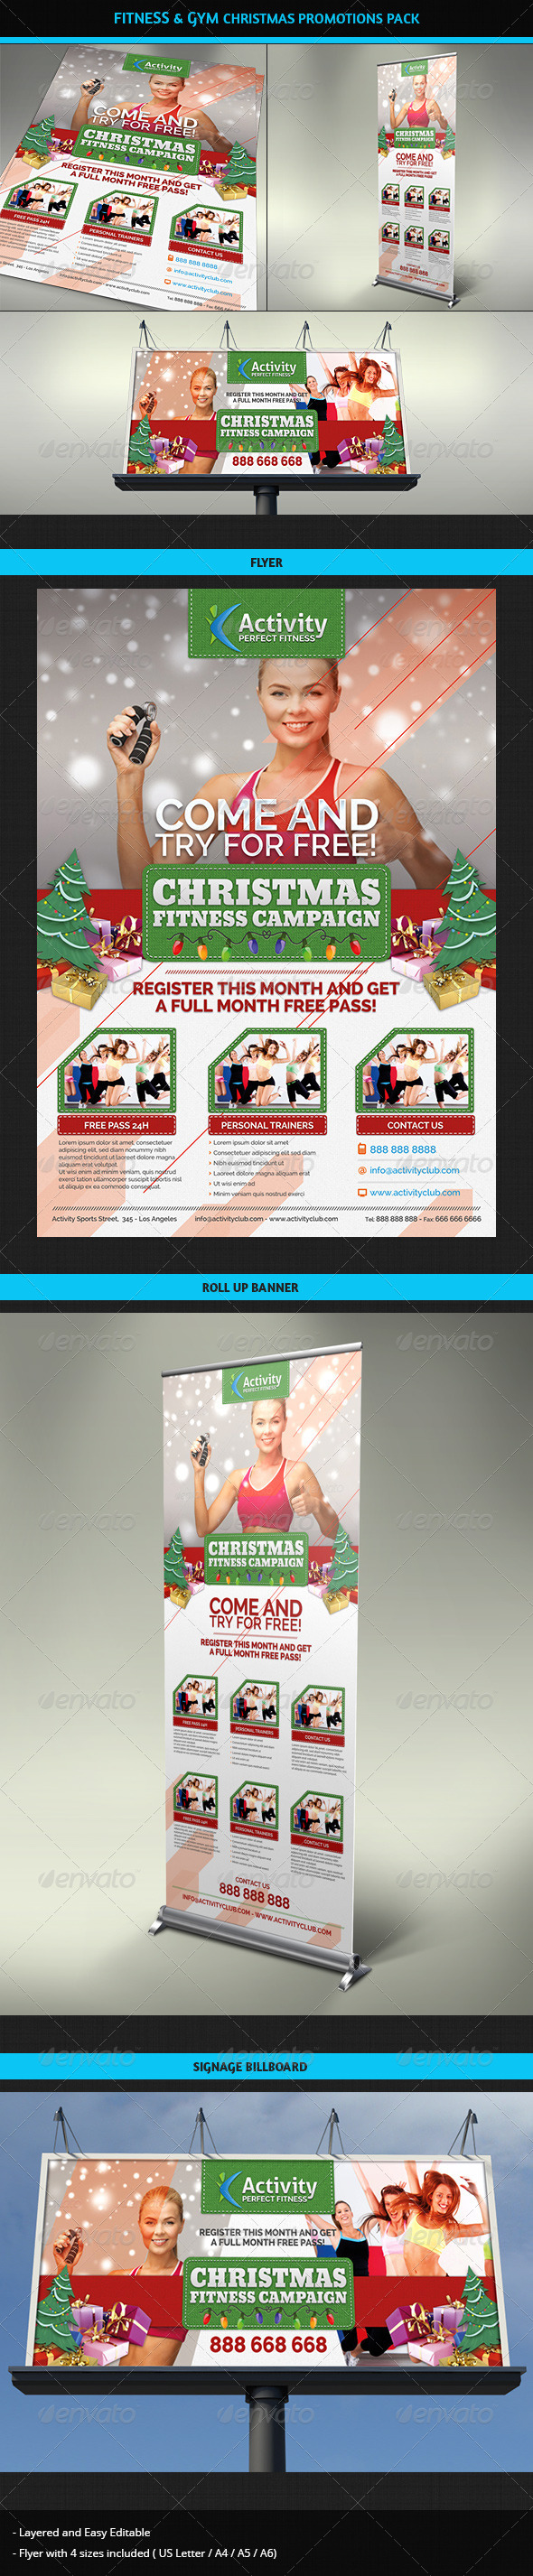 Fitness & Gym Christmas Promotions Pack - Commerce Flyers